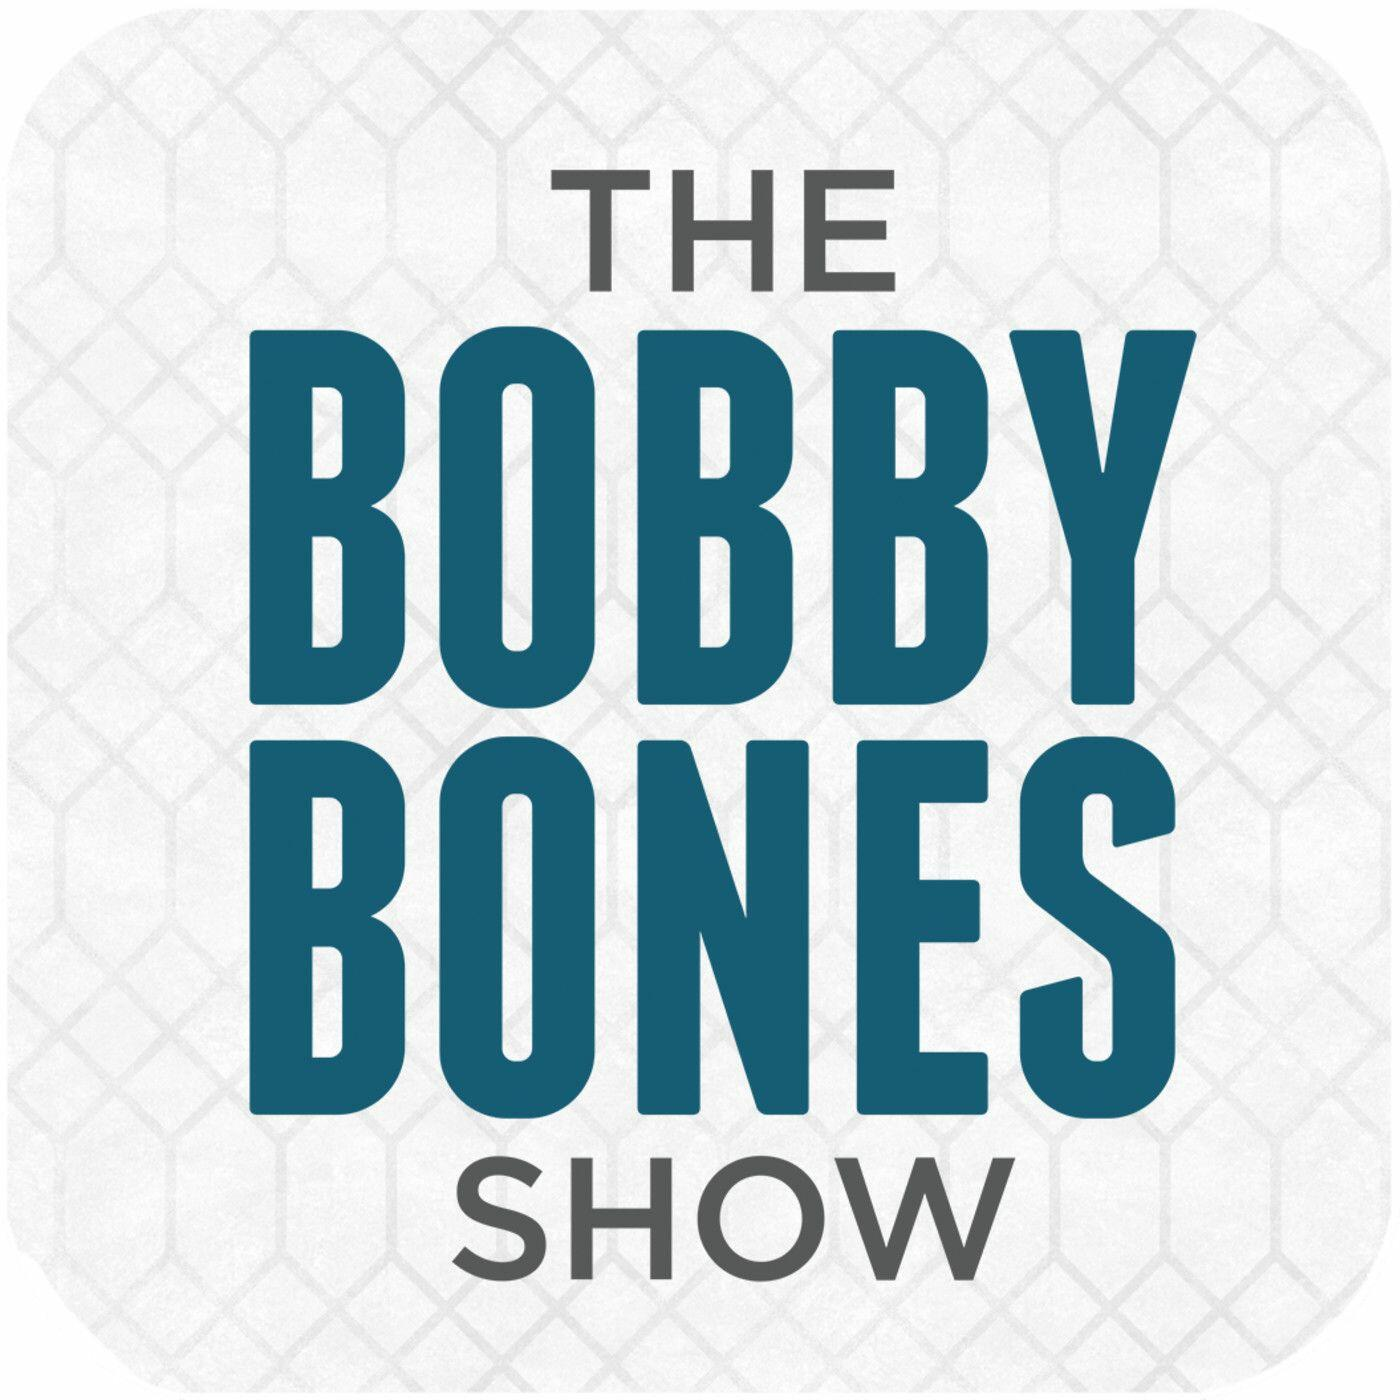 Monday Post Show (05-3-21) - The Bobby Bones Show | iHeartRadio